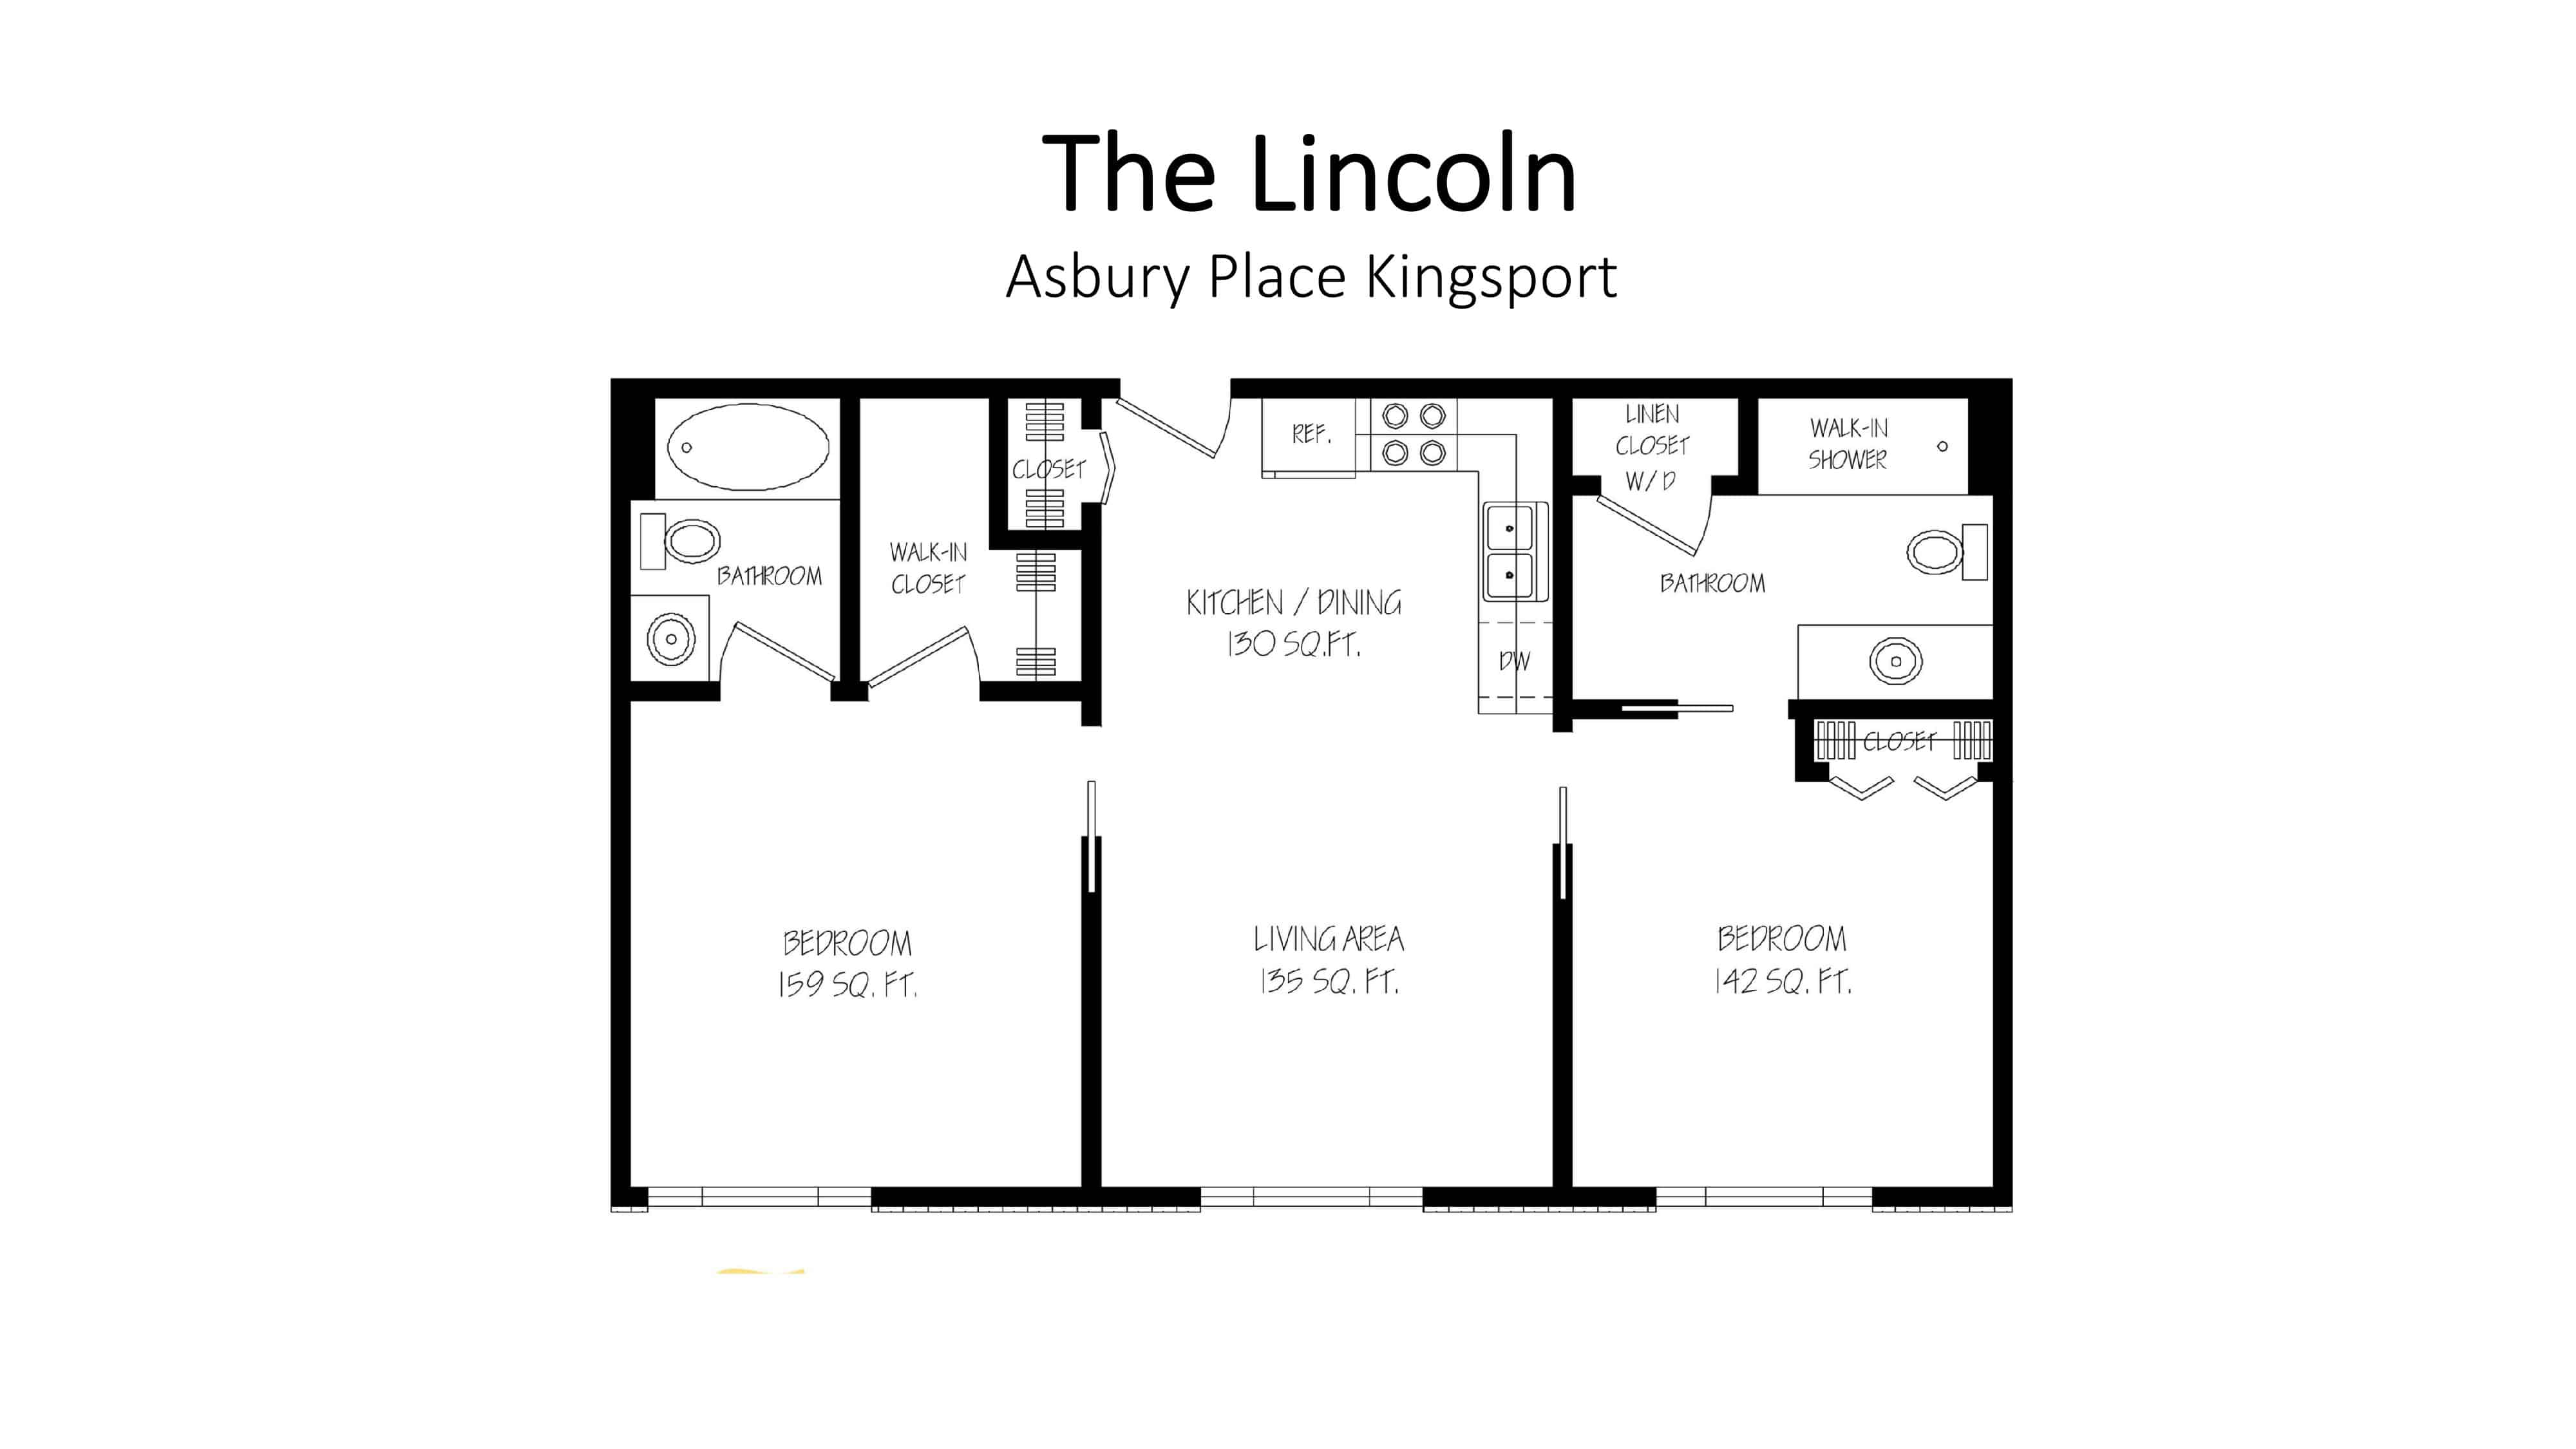 Asbury Place Kingsport The Lincoln Floorplan